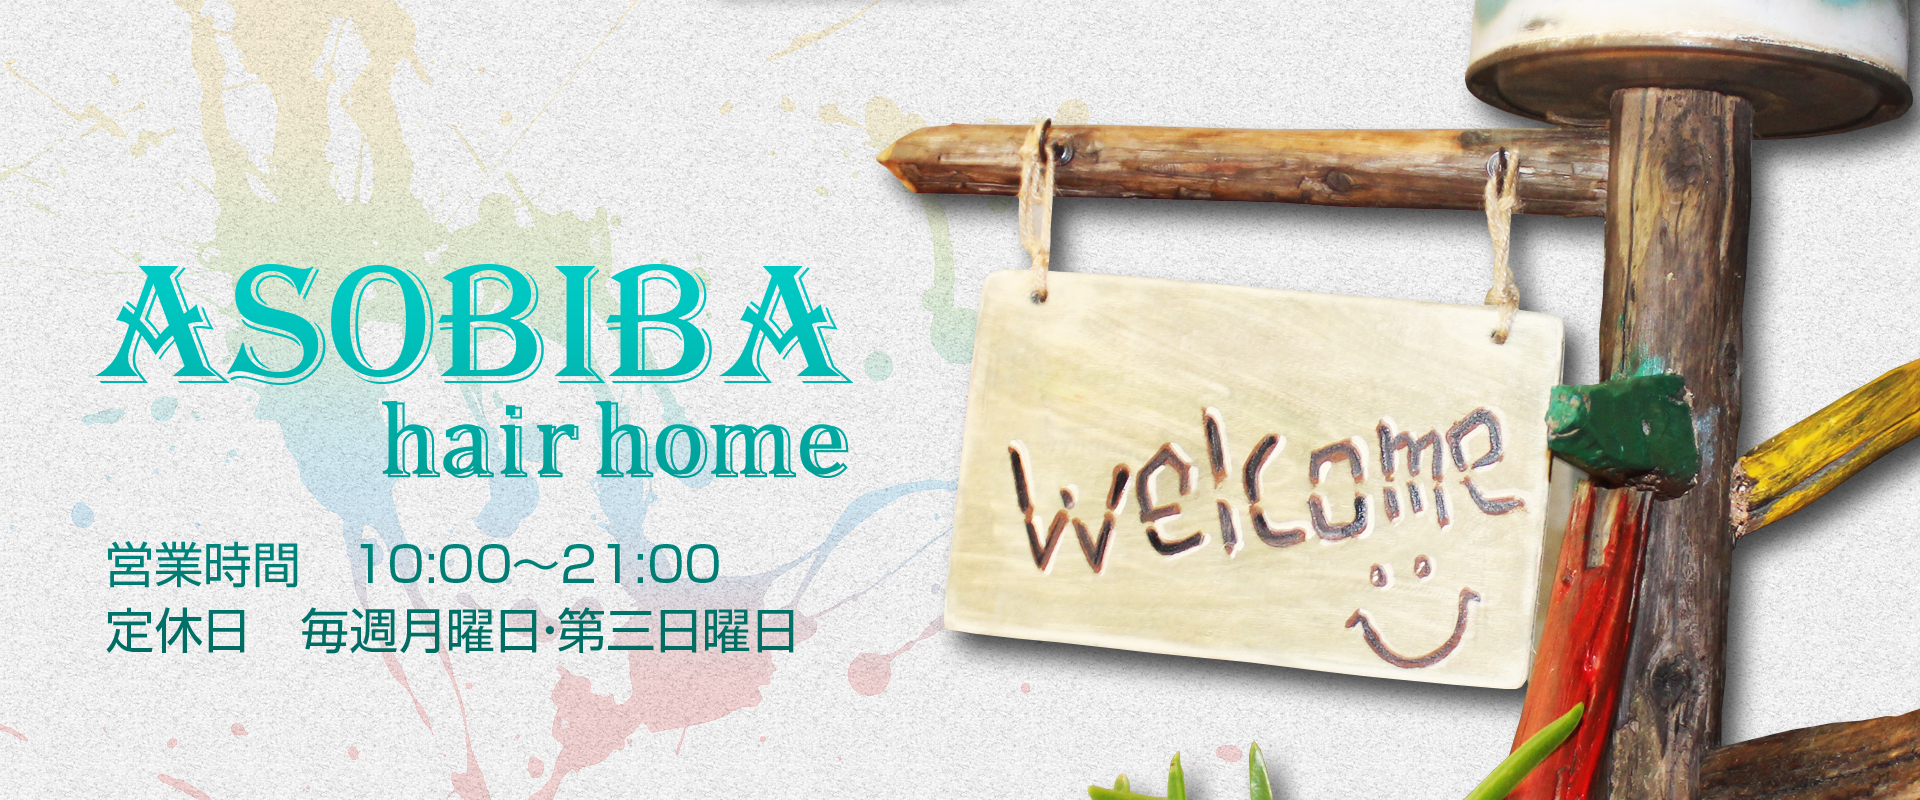 Asobiba Hair Home